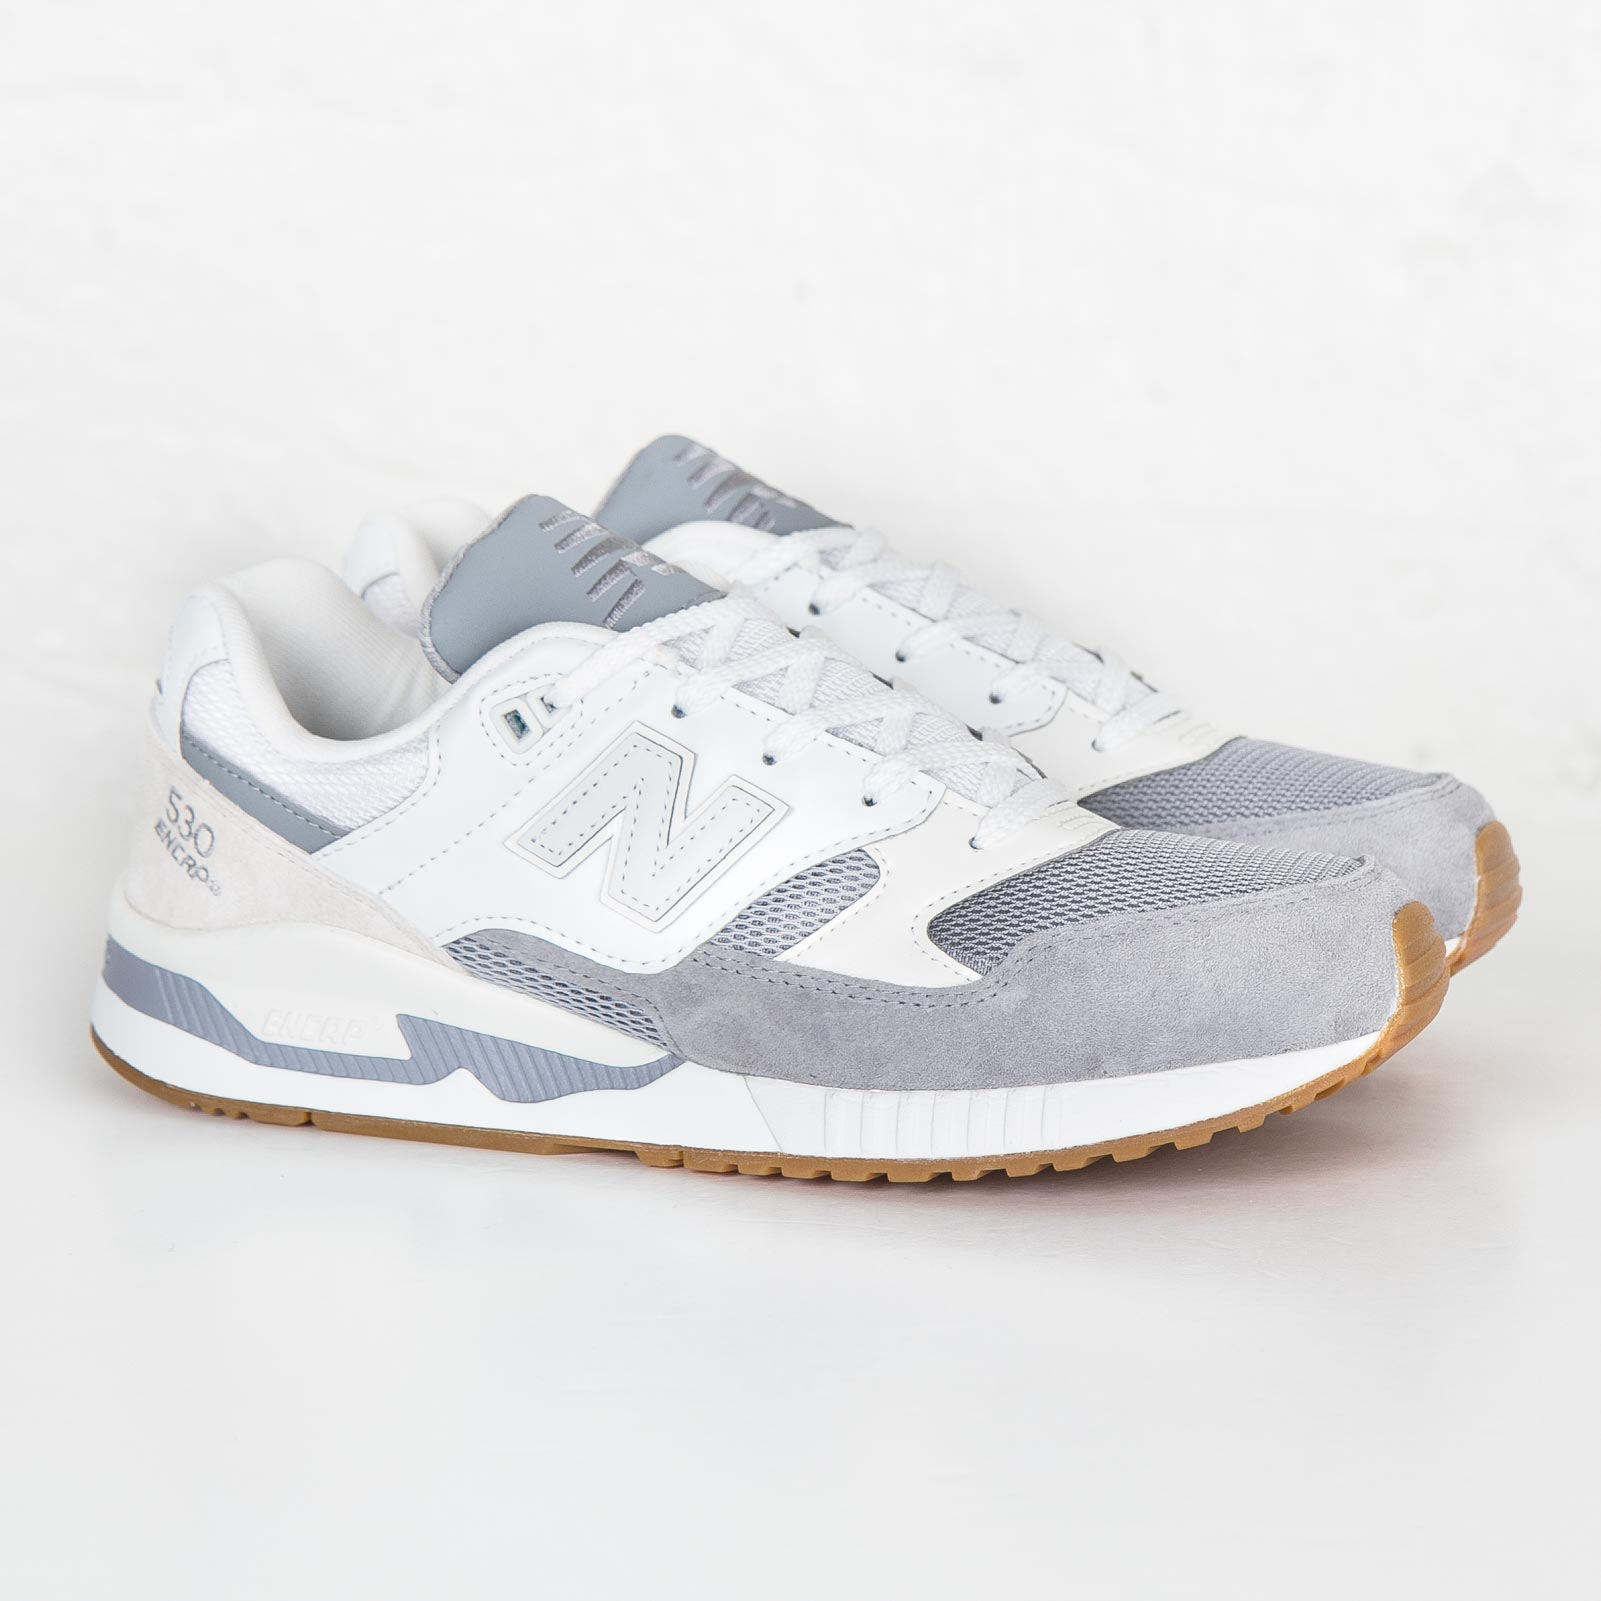 finest selection 7c4e6 23937 New Balance M530 - M530ab - Sneakersnstuff | sneakers ...